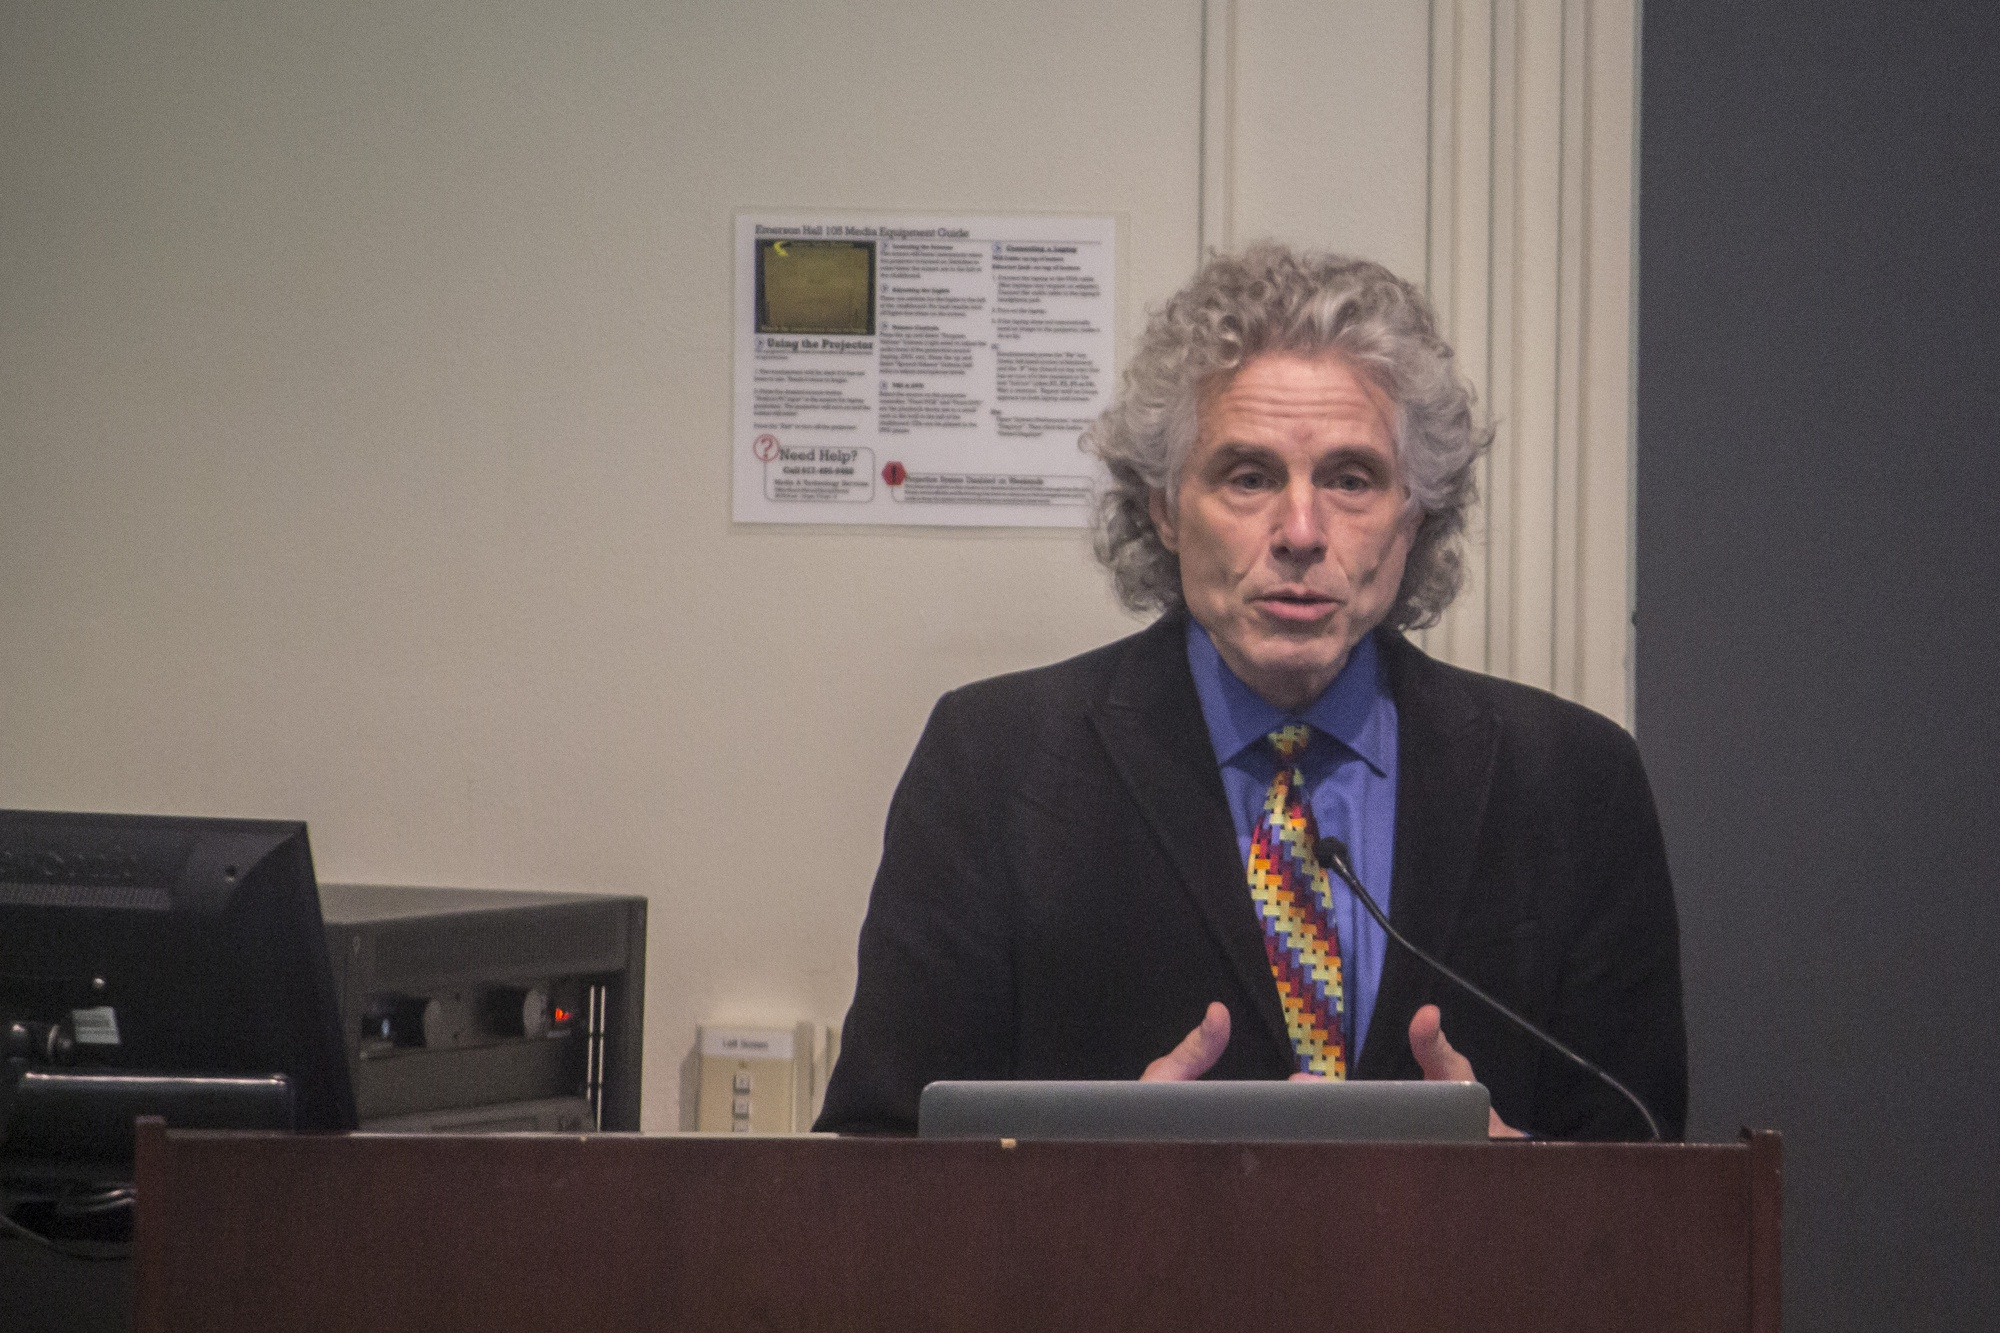 Harvard College Prof. Steven A. Pinker engaged in a conversation about the transcendence of the humanities and sciences with Edgar Pierce Prof. Susanna C. Siegel in light of the recent discussions about the importance of the humanities compared to the sciences.